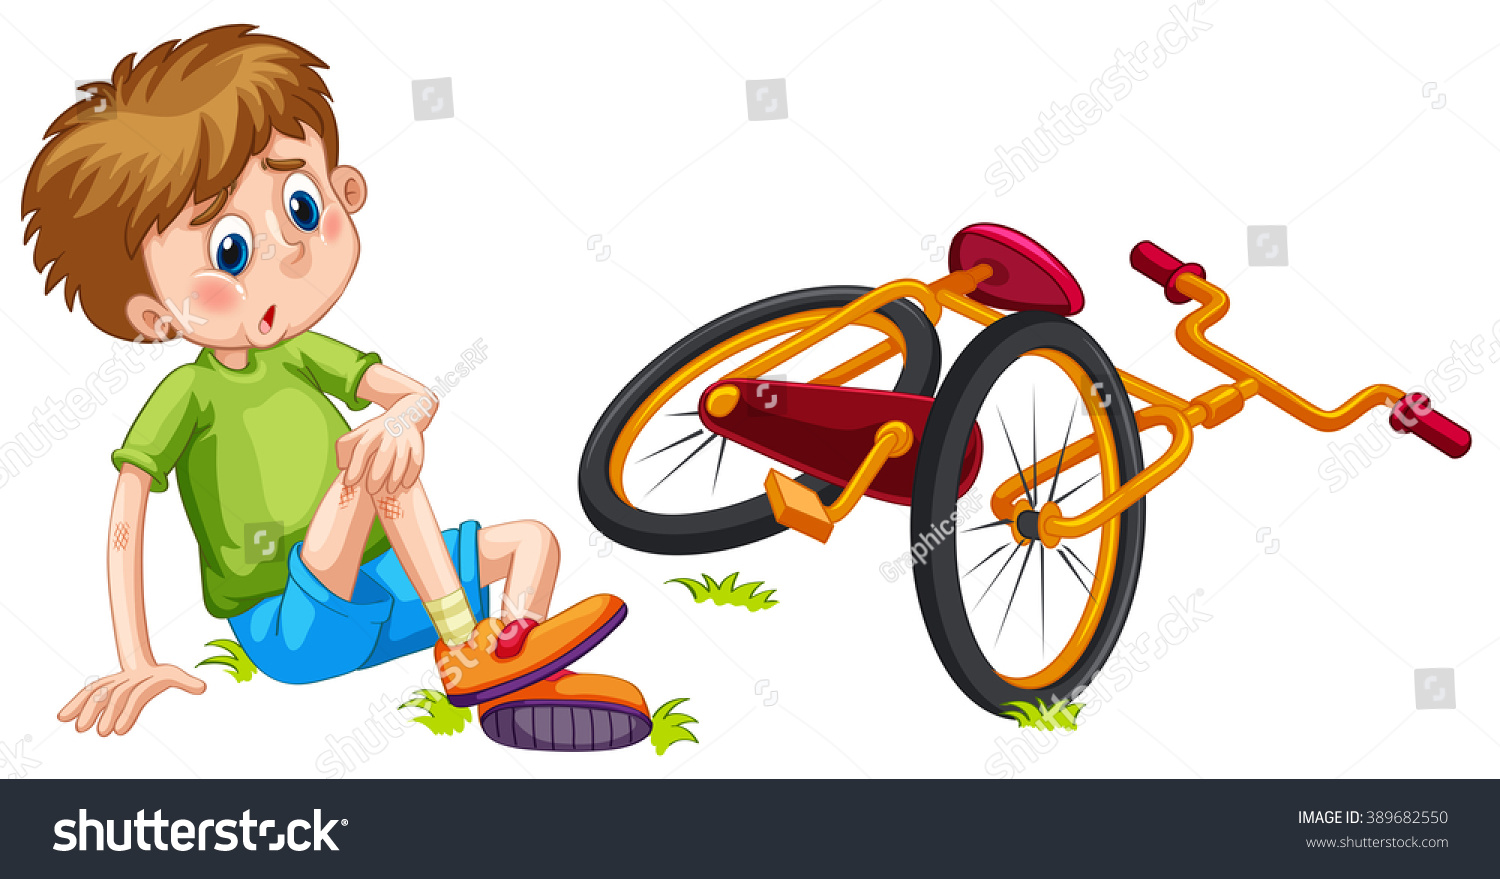 hight resolution of falling off a bike clipart 5